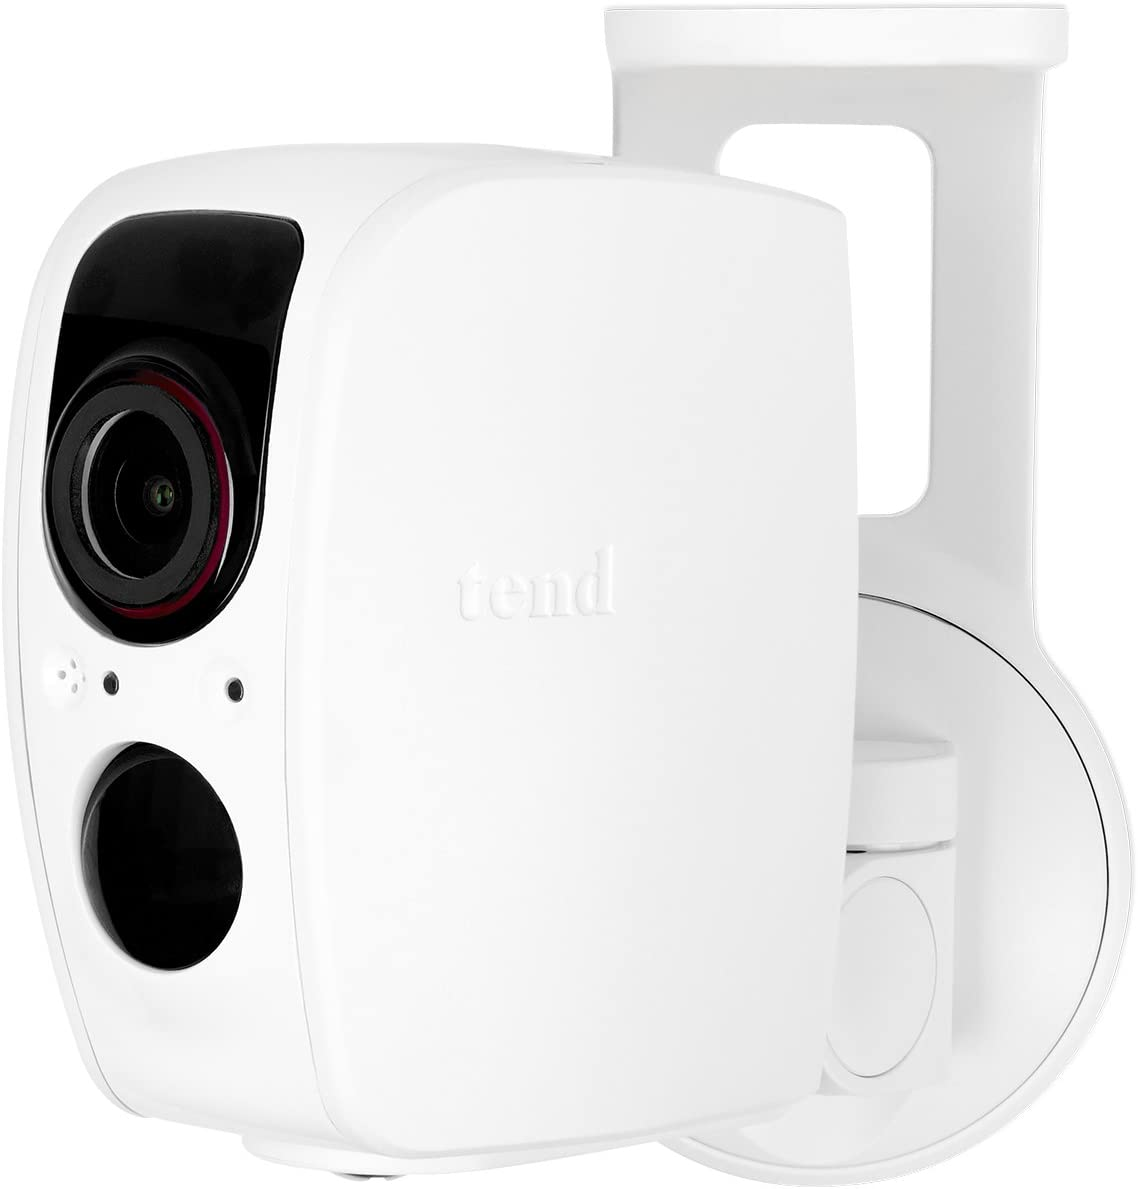 Tend Insights Lynx Pro - Indoor/Outdoor Weatherproof Wifi Security Camera With Battery Backup, Two Way Audio, Night Vision, And Included Cloud Storage, White (Ts0031)